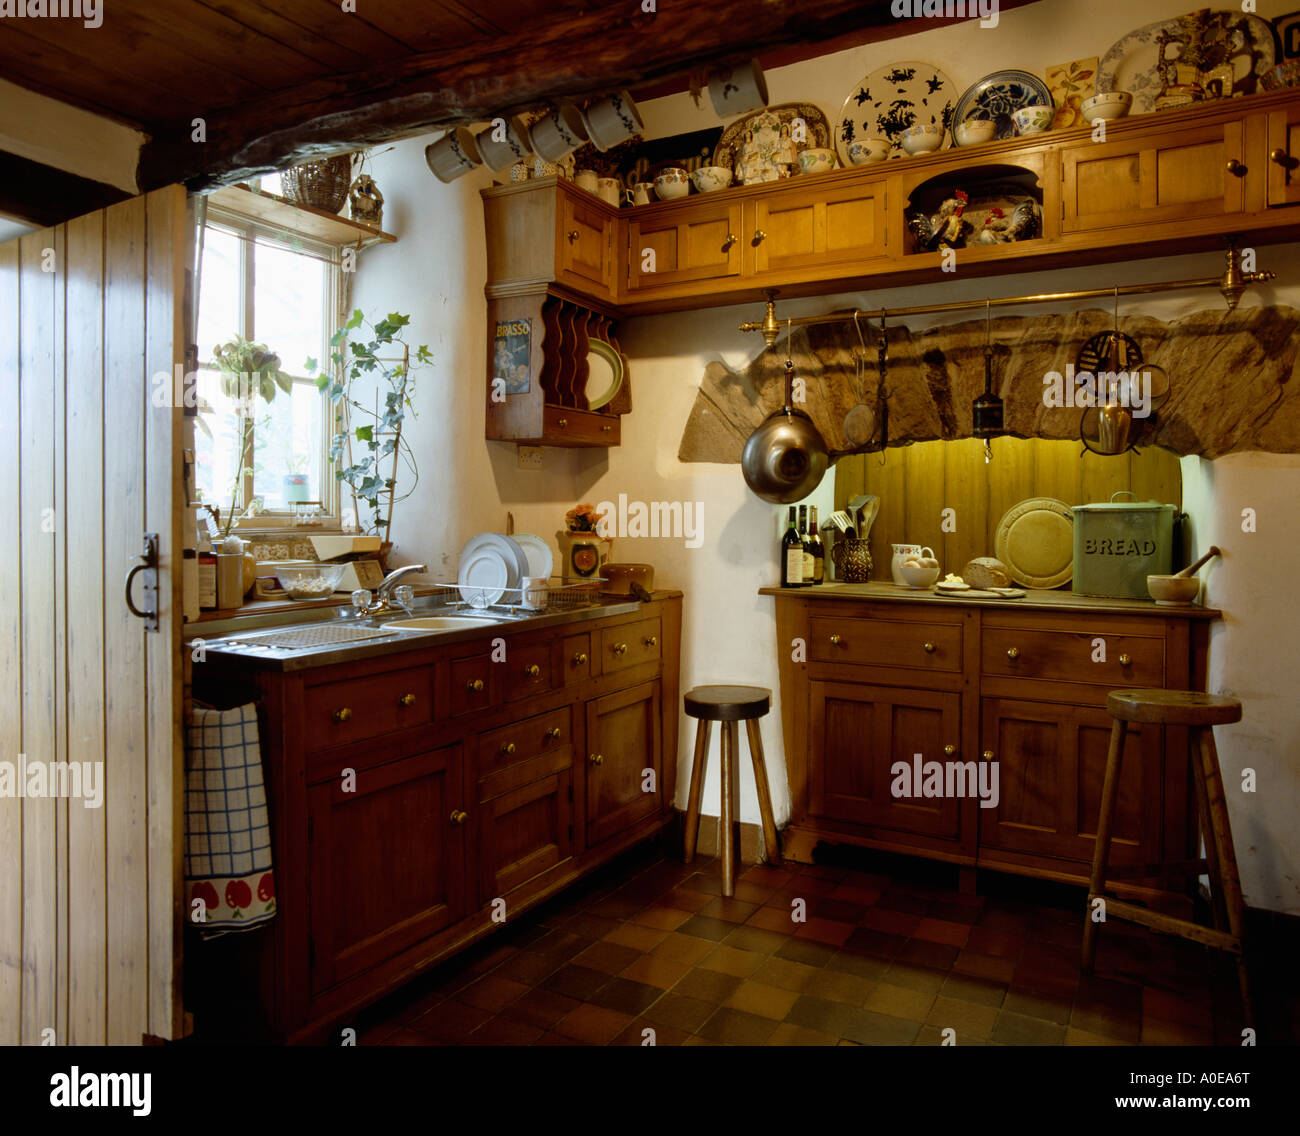 Door Open Into Wooden Cottage Kitchen With Pine Furniture